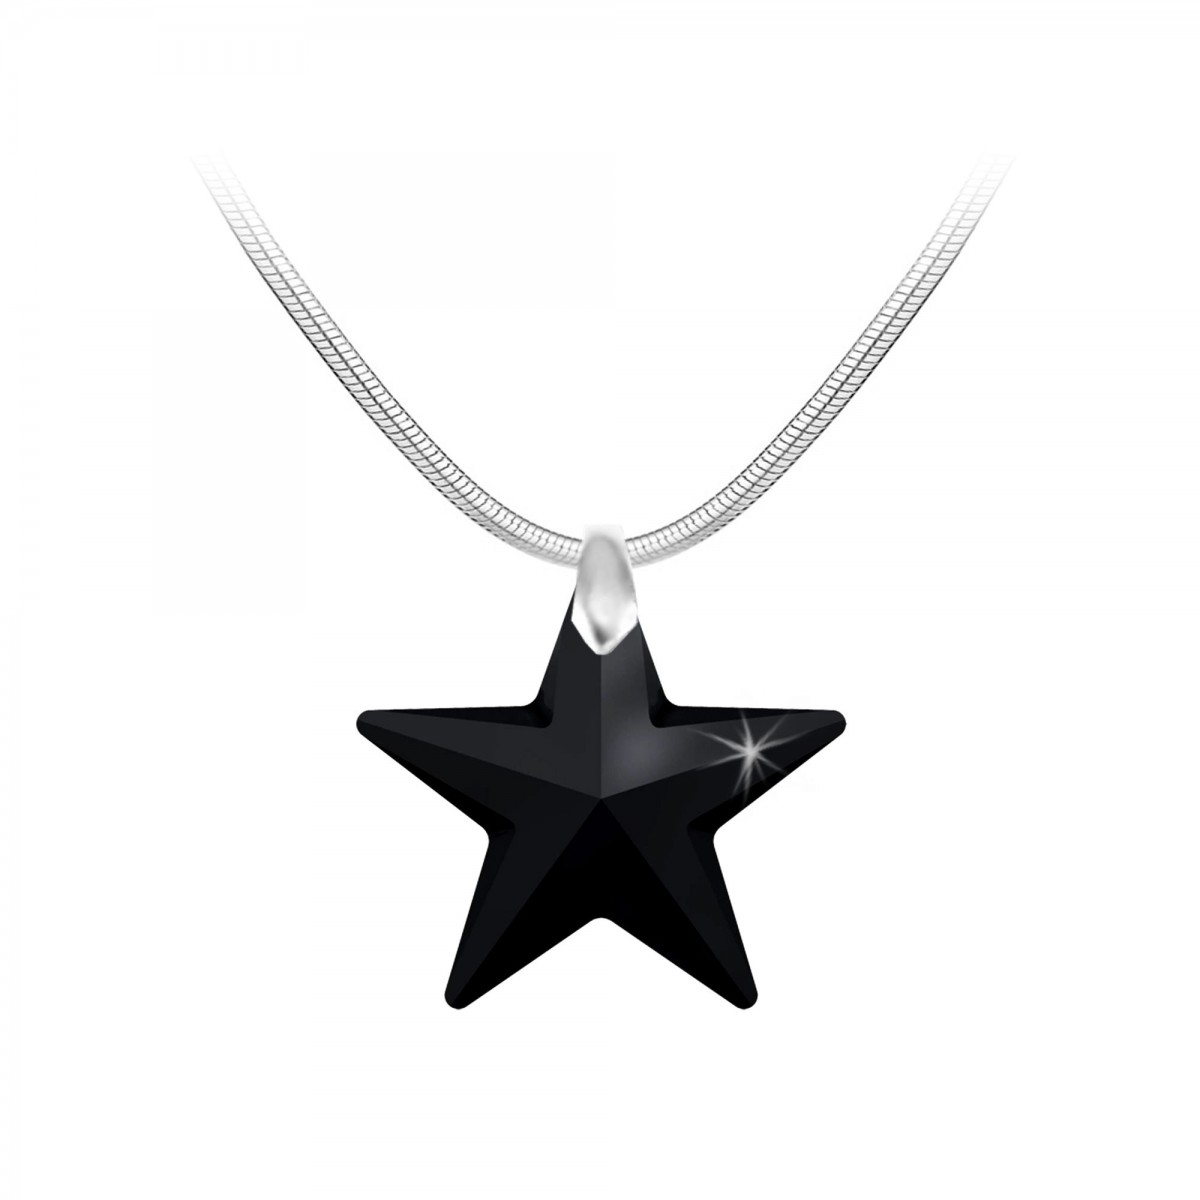 Collier argenté étoile noire So Charm made with Crystal from Swarovski